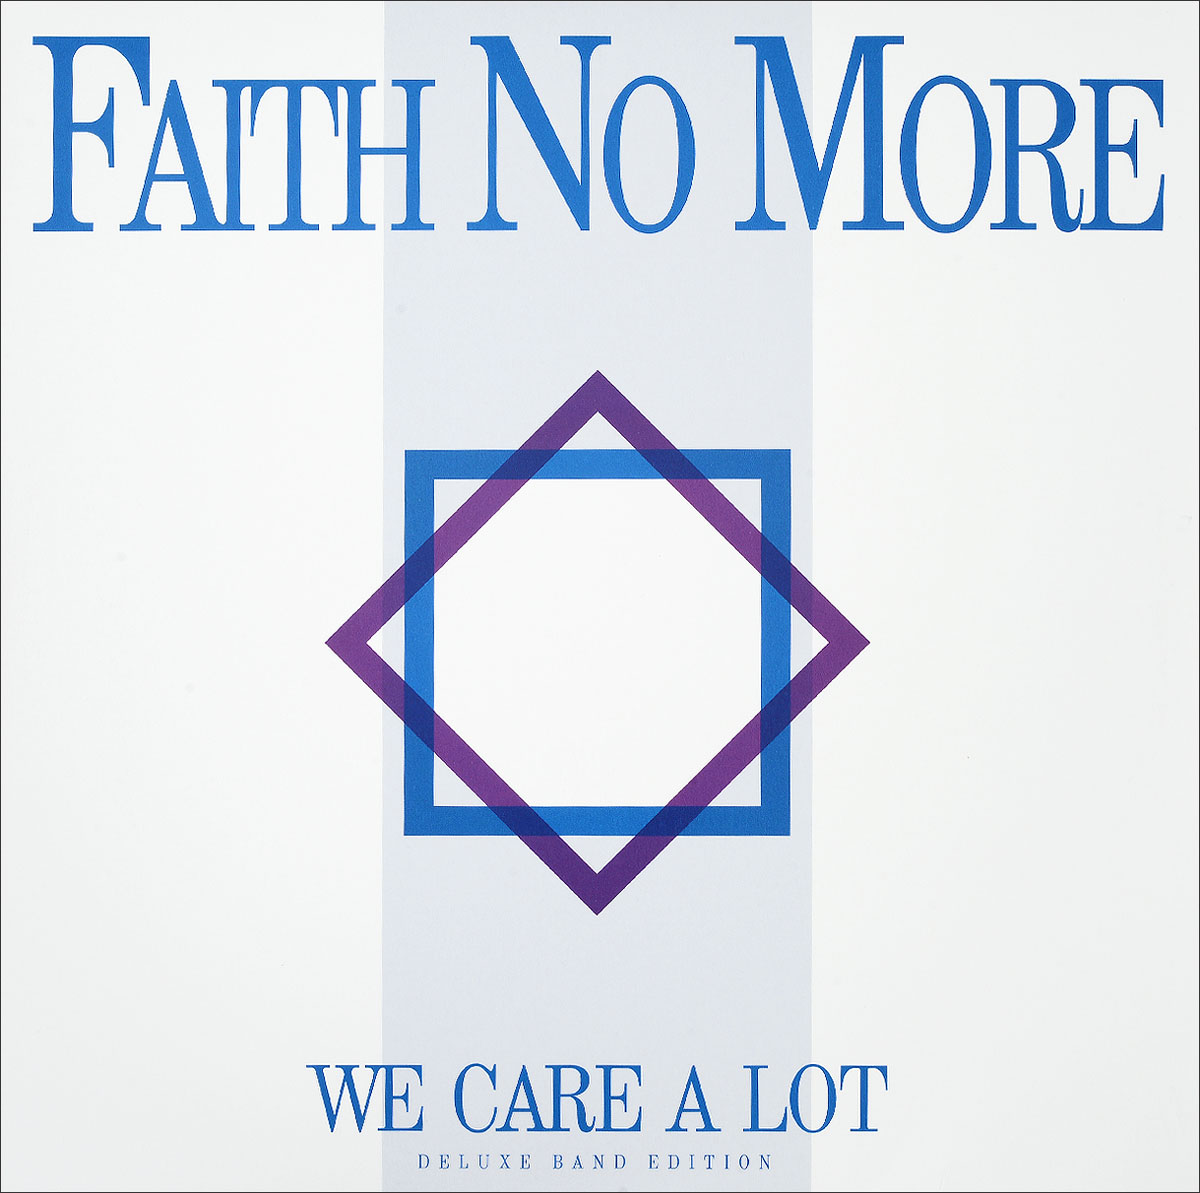 Фото - Faith No More Faith No More. We Care A Lot. Deluxe Band Edition (2 LP + CD) 200pcs lot cd4011be cd4011 cd4011b quad 2 input nor gate dip 14 cd digital ic